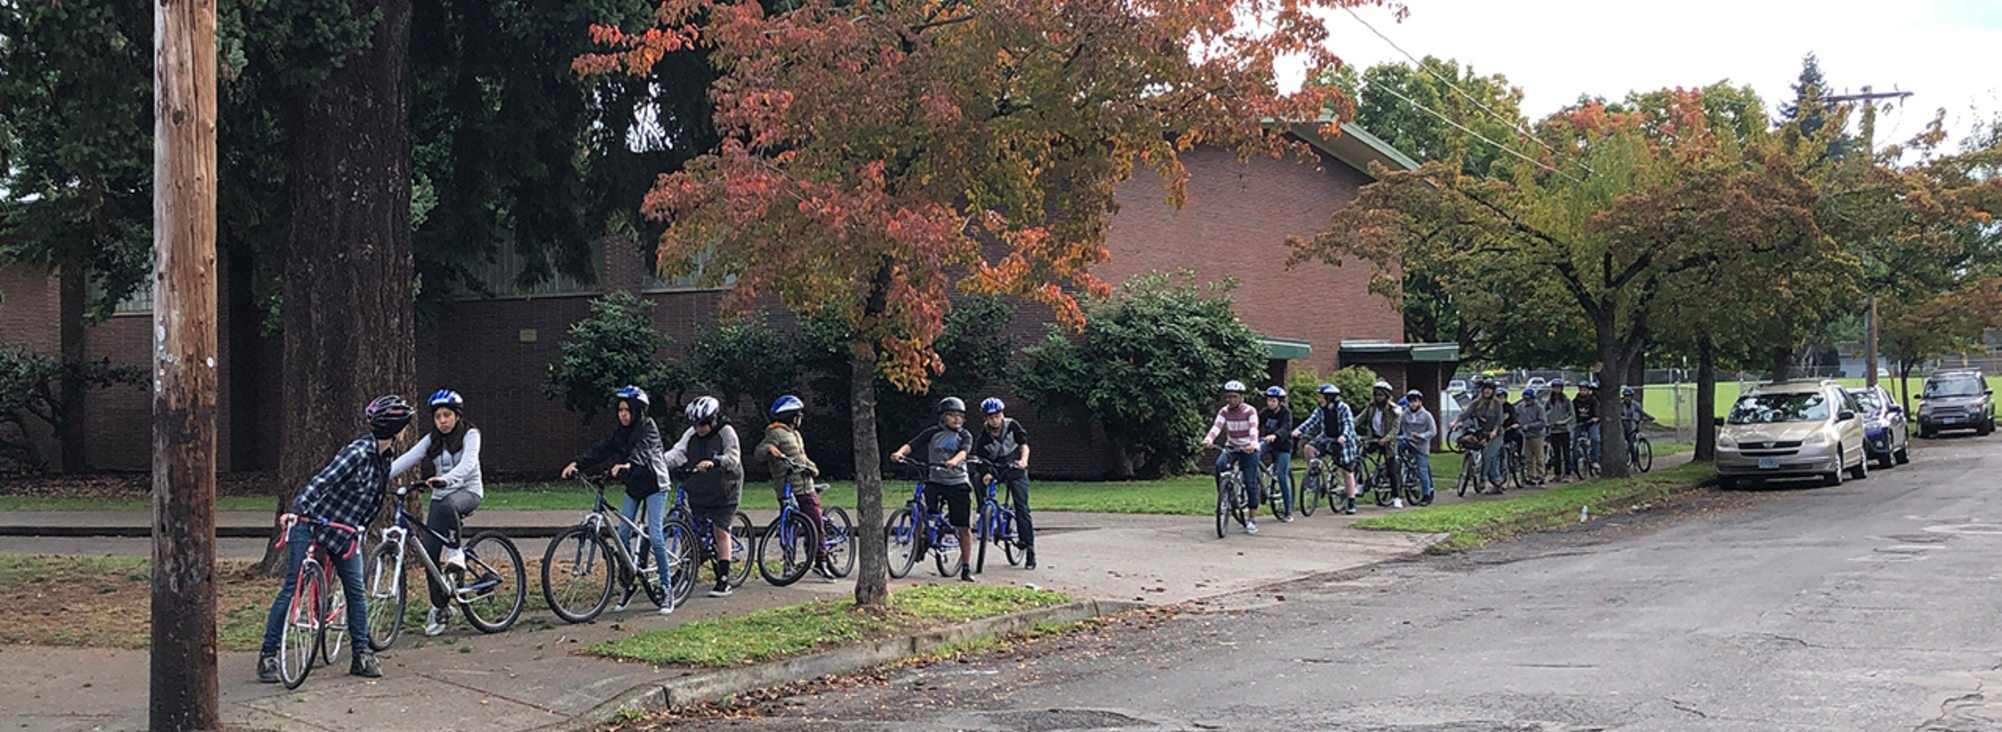 Middle school students, mounted on bikes, form a line on a sidewalk outside their school